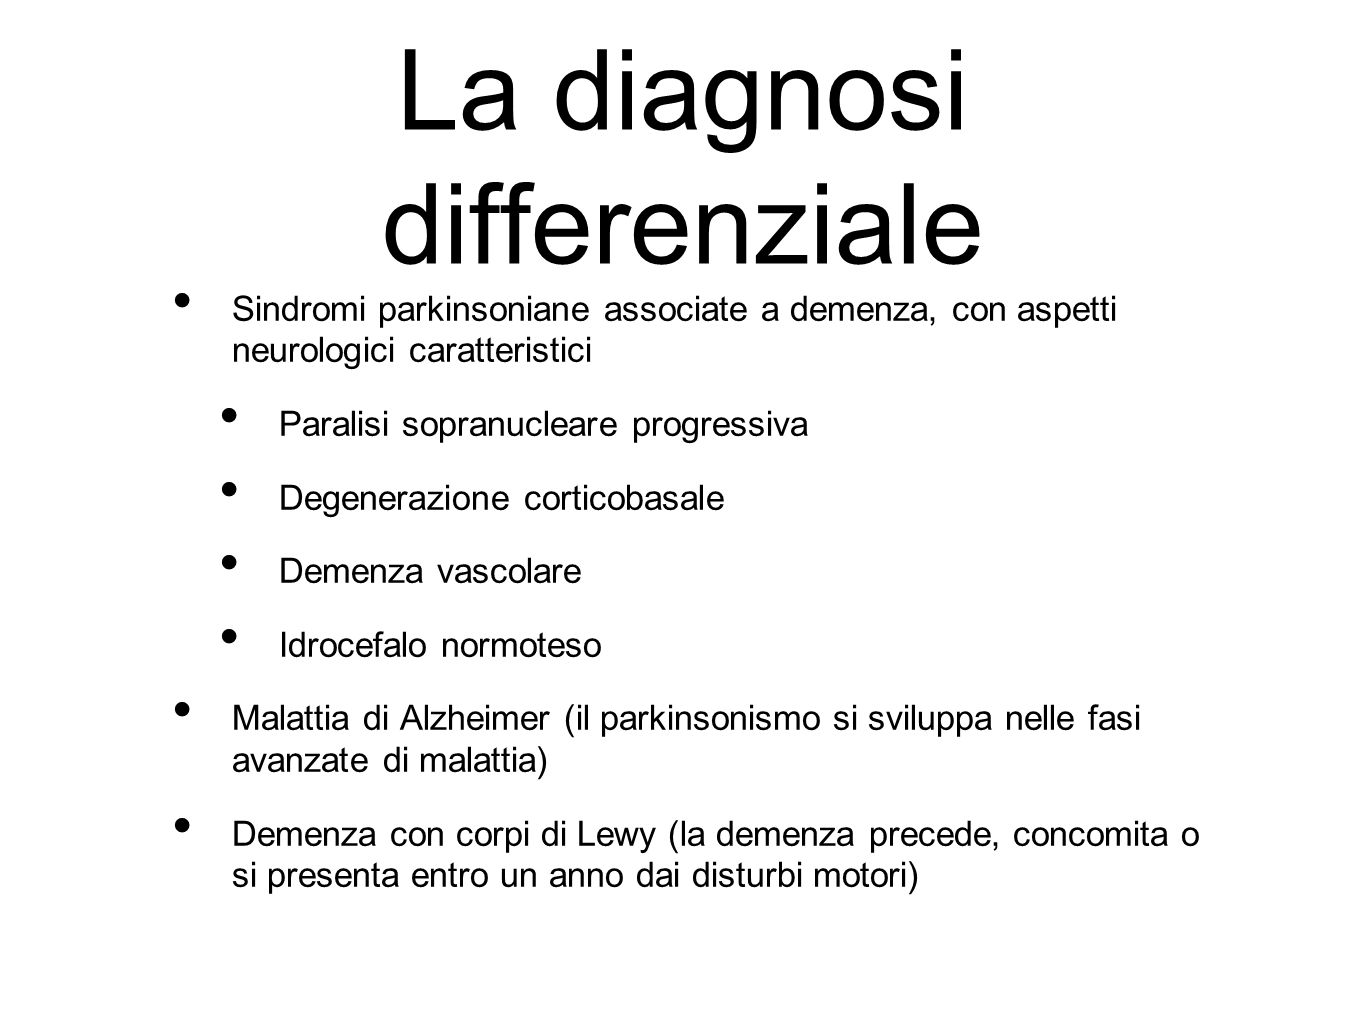 La diagnosi differenziale